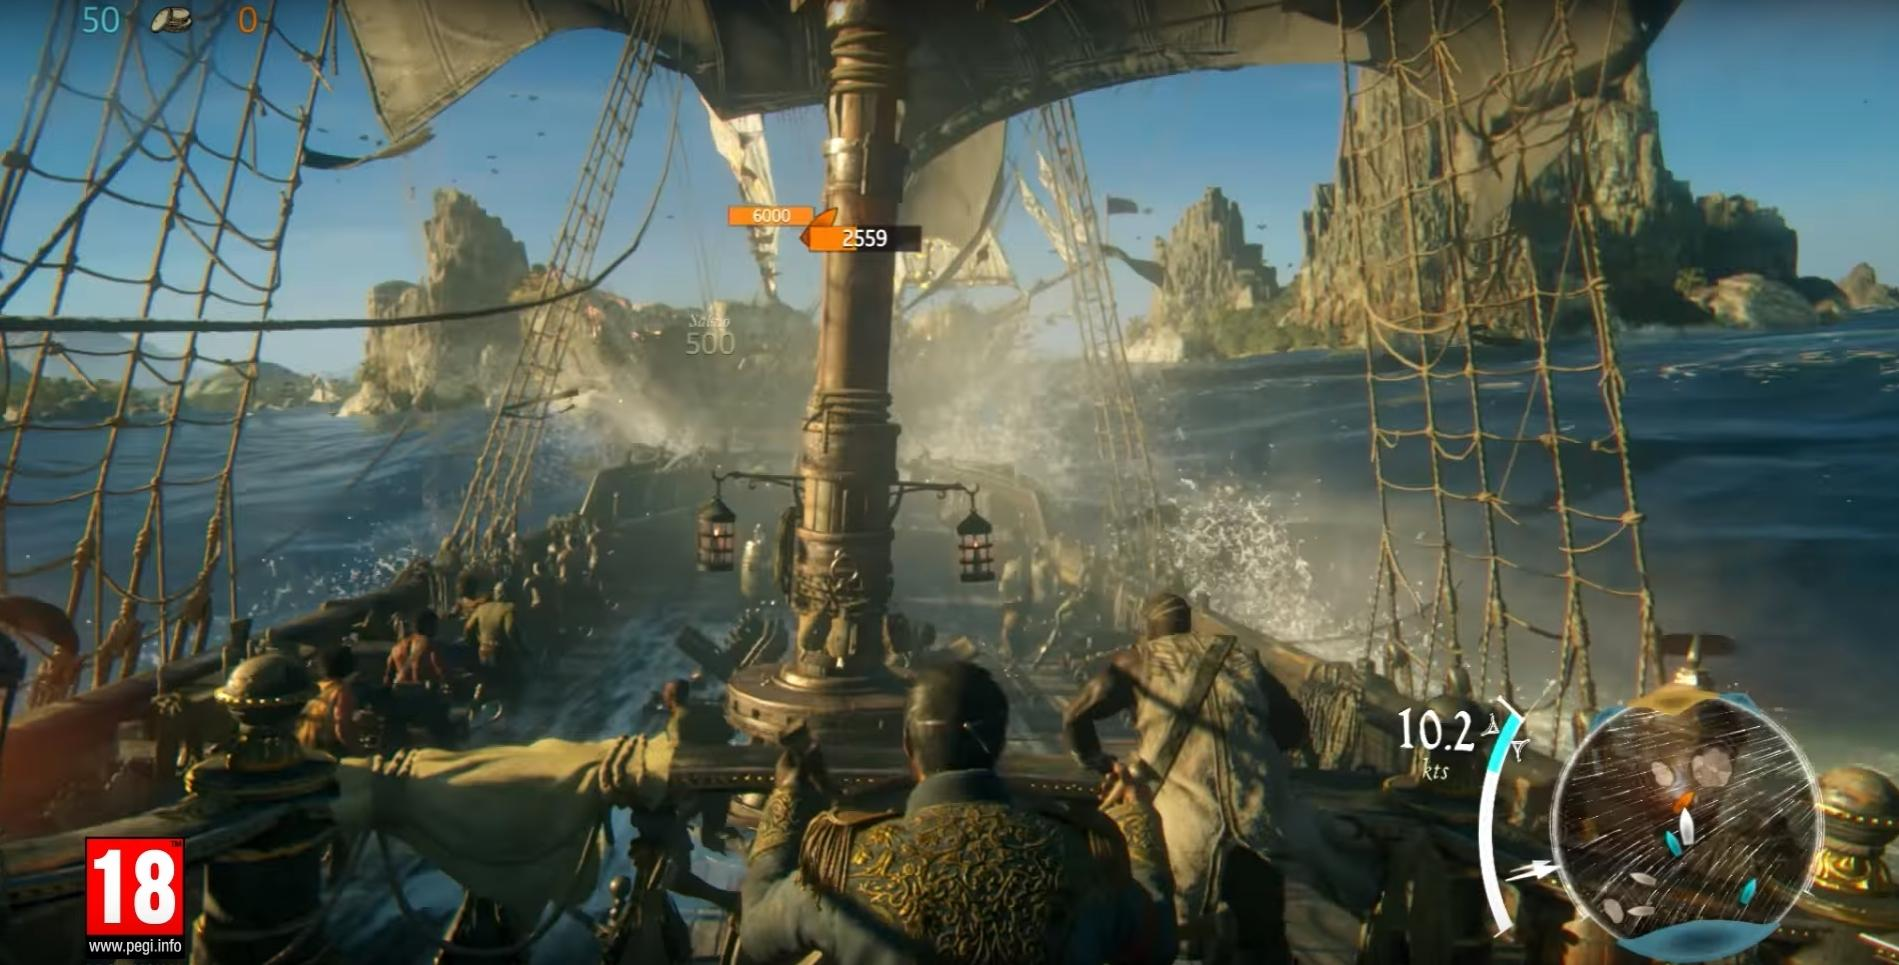 Ubisoft Reveals Black Flag Successor, Skull and Bones